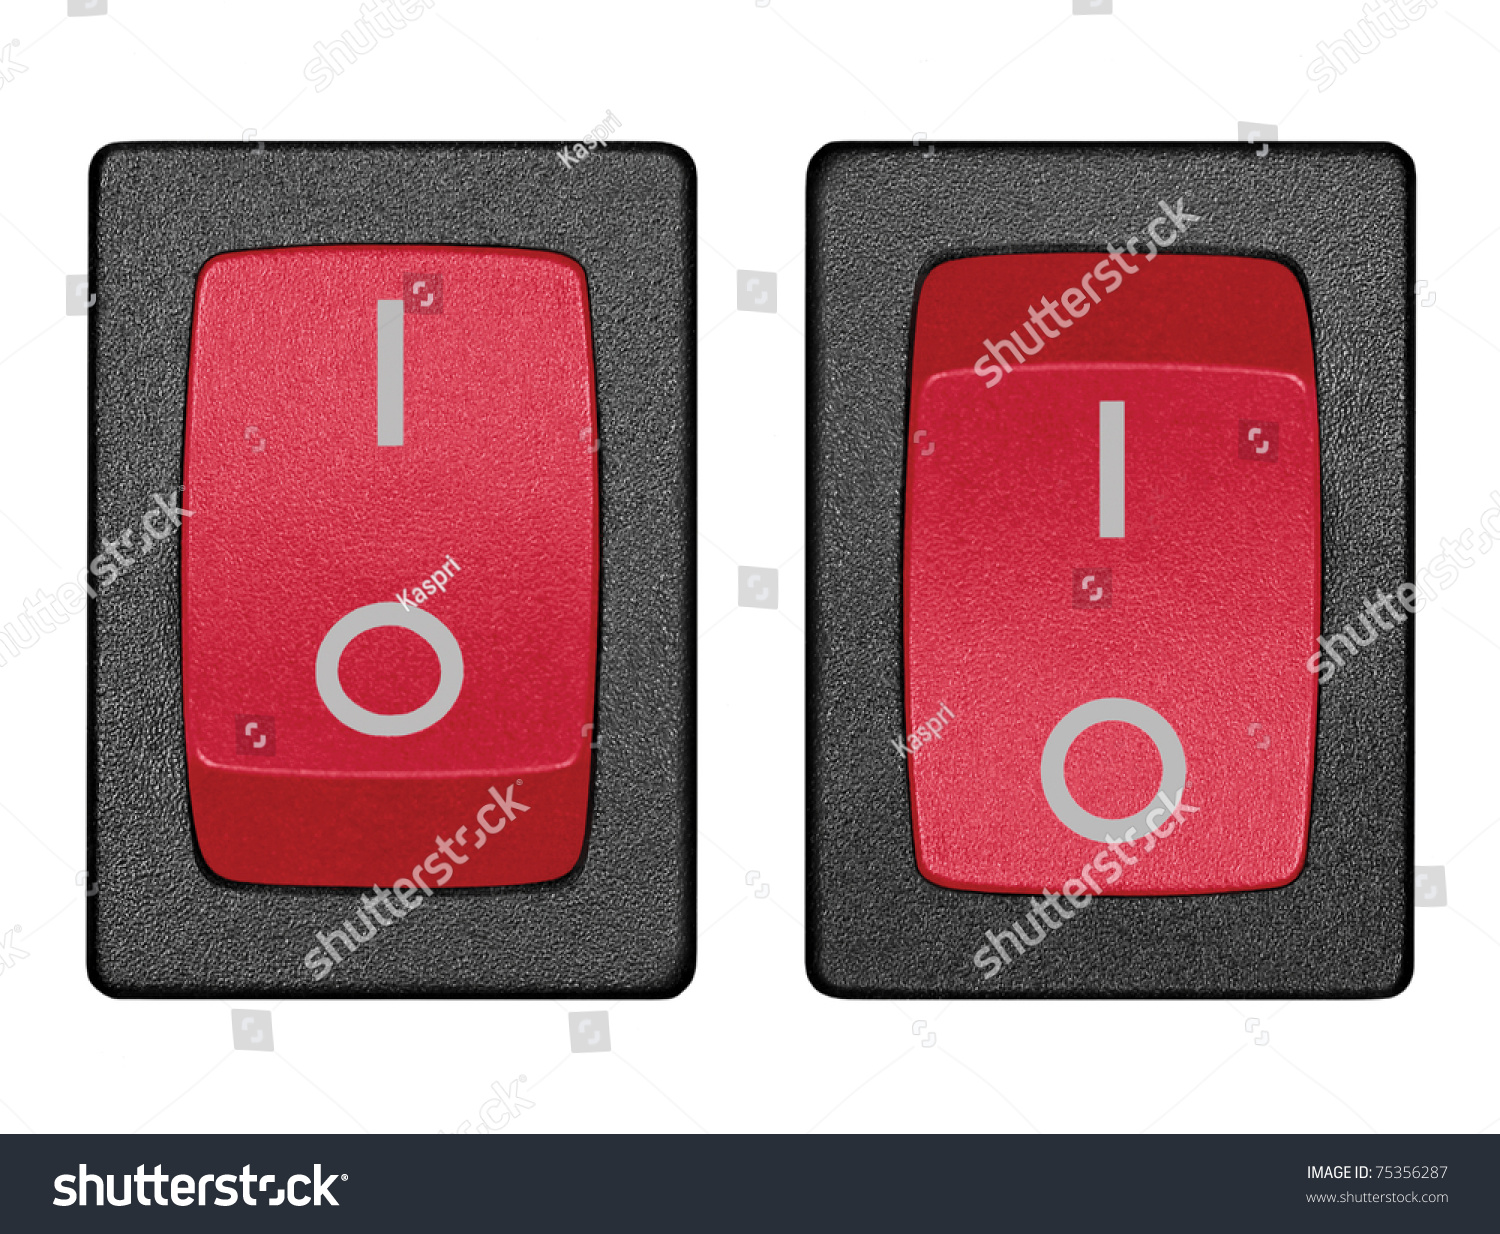 Red Power Switches On Off Position Stock Photo Edit Now 75356287